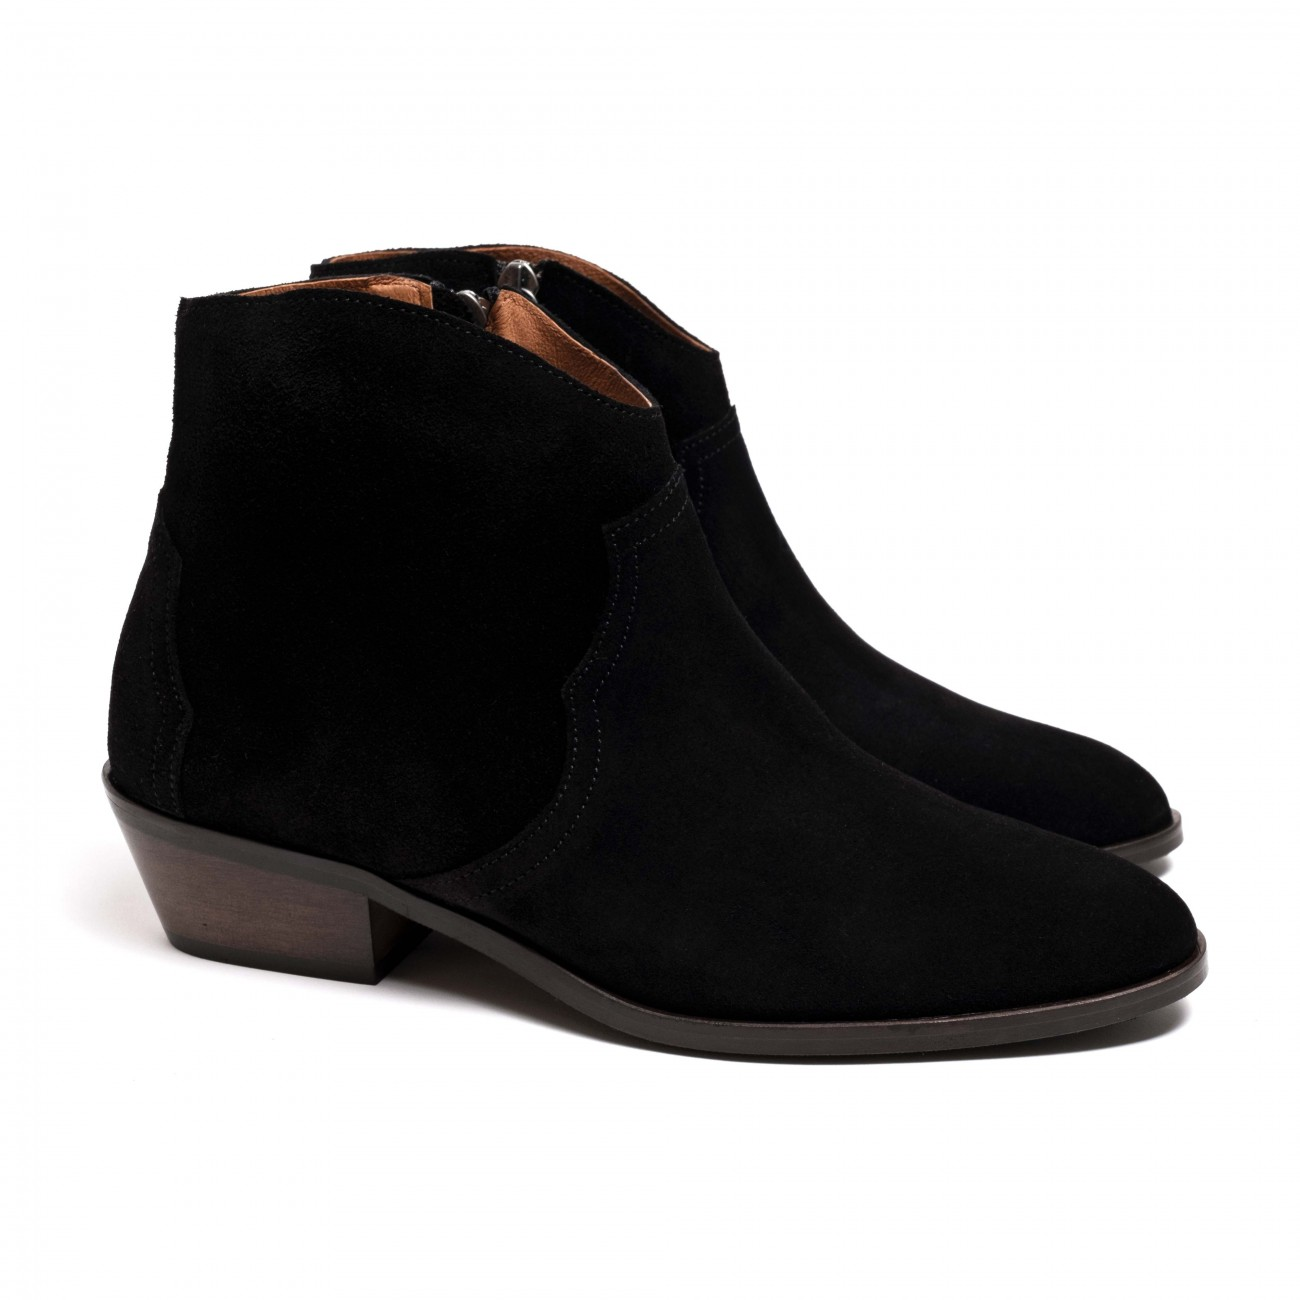 Fiona Black calf suede